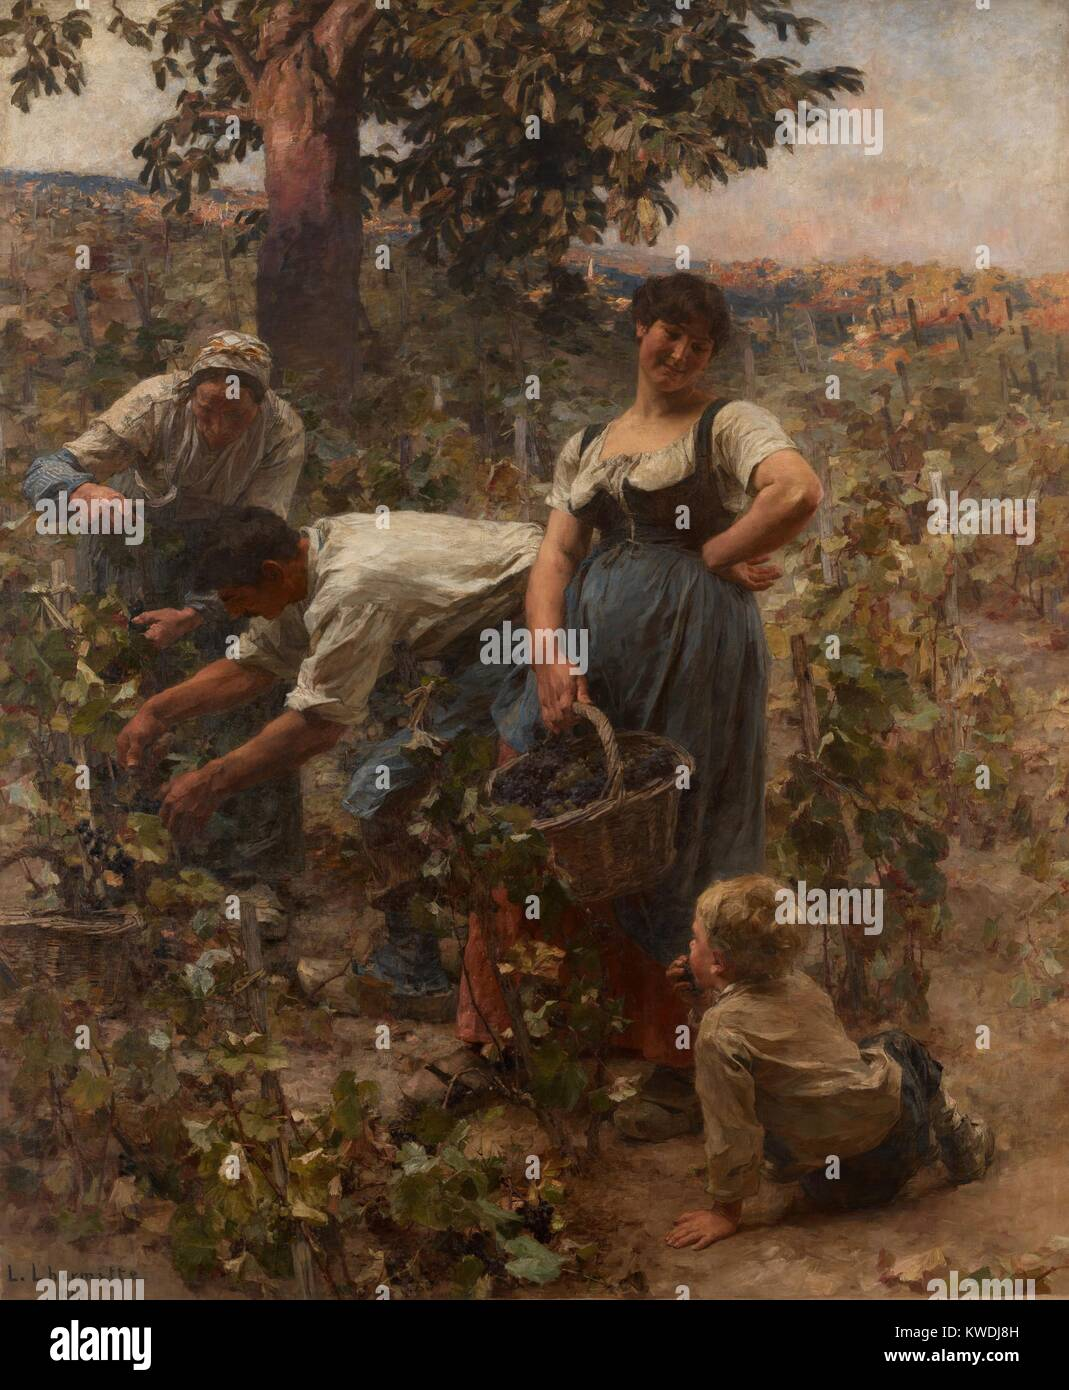 THE GRAPE HARVEST, by Leon-Augustin Lhermitte, 1884, French painting, oil on canvas. This beaux arts realist painting - Stock Image